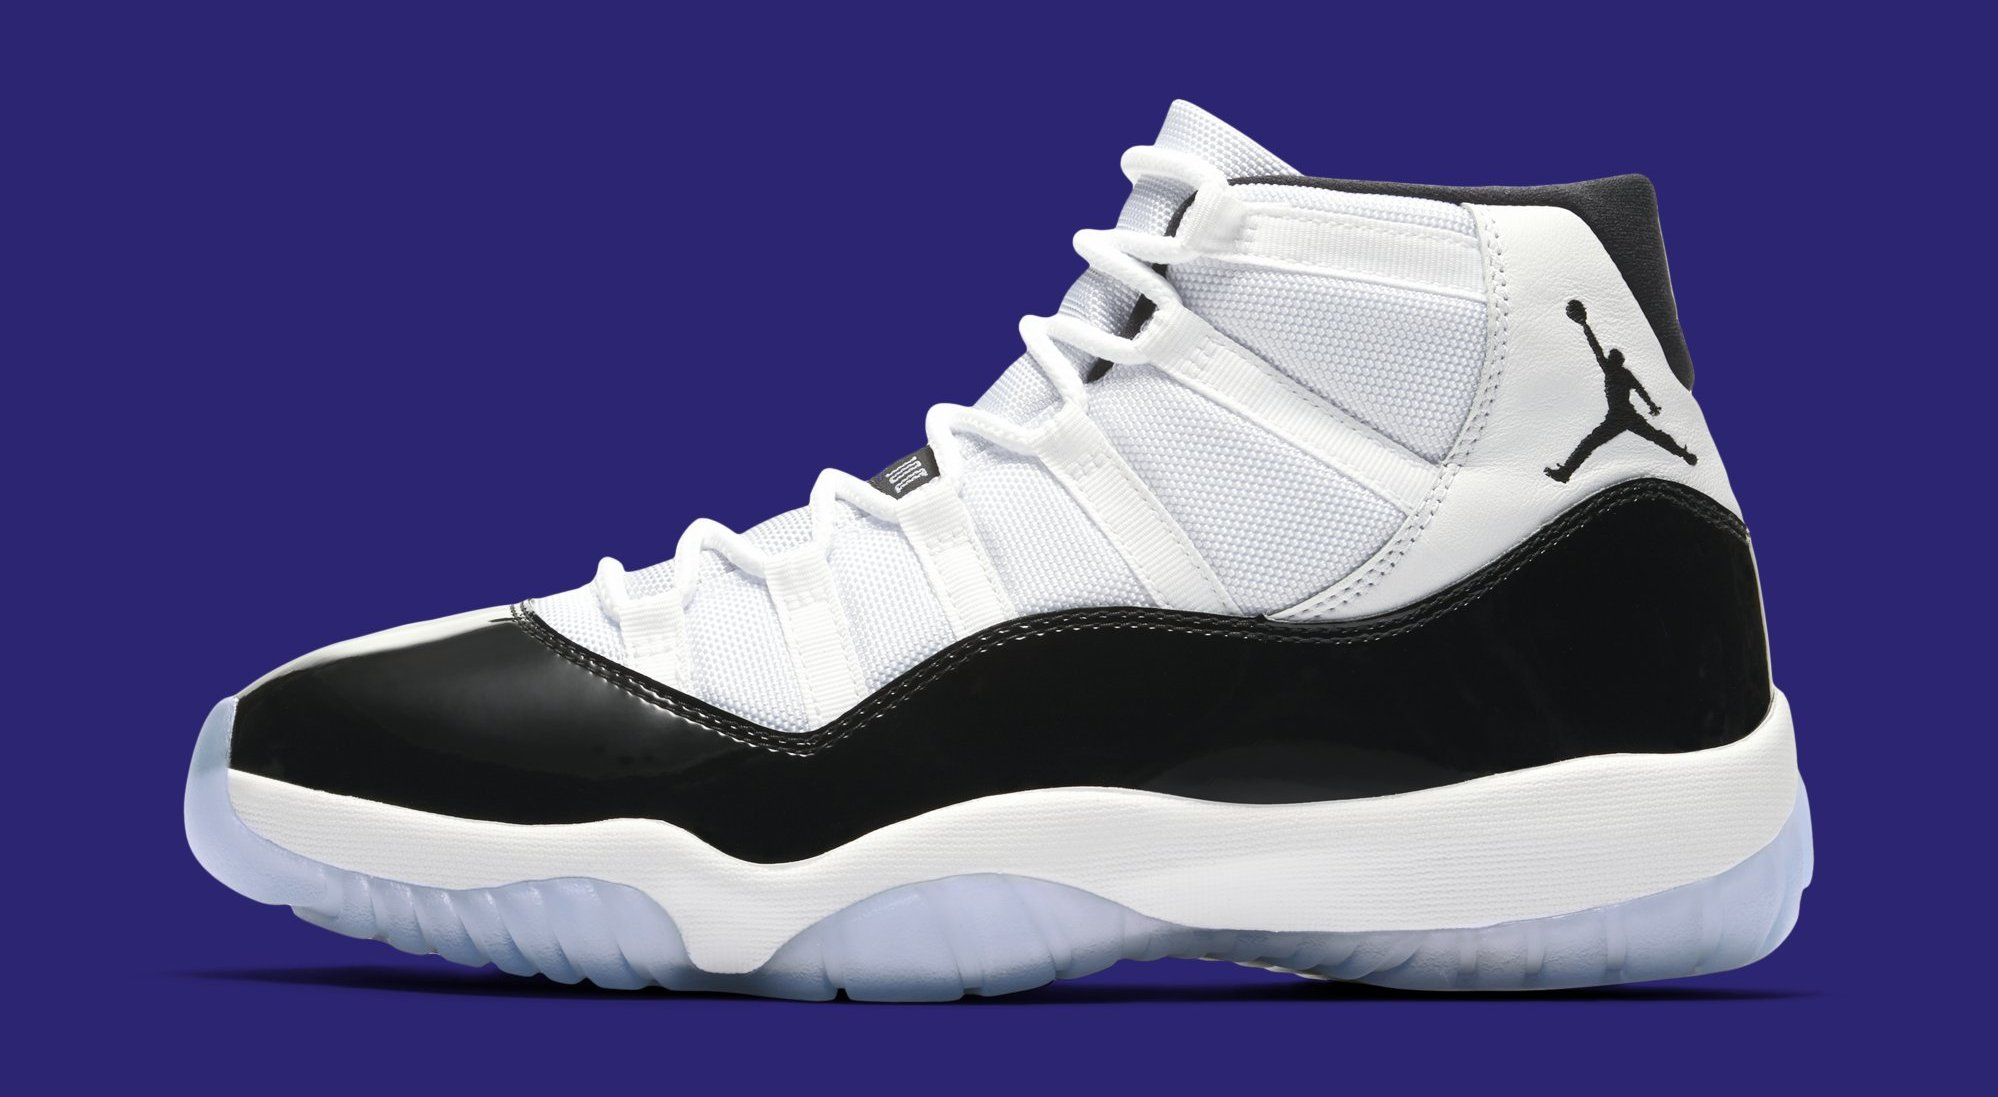 ceeea02ea3 'Concord' Air Jordan 11s Will Be Easy to Get and That's a Good Thing | Sole  Collector